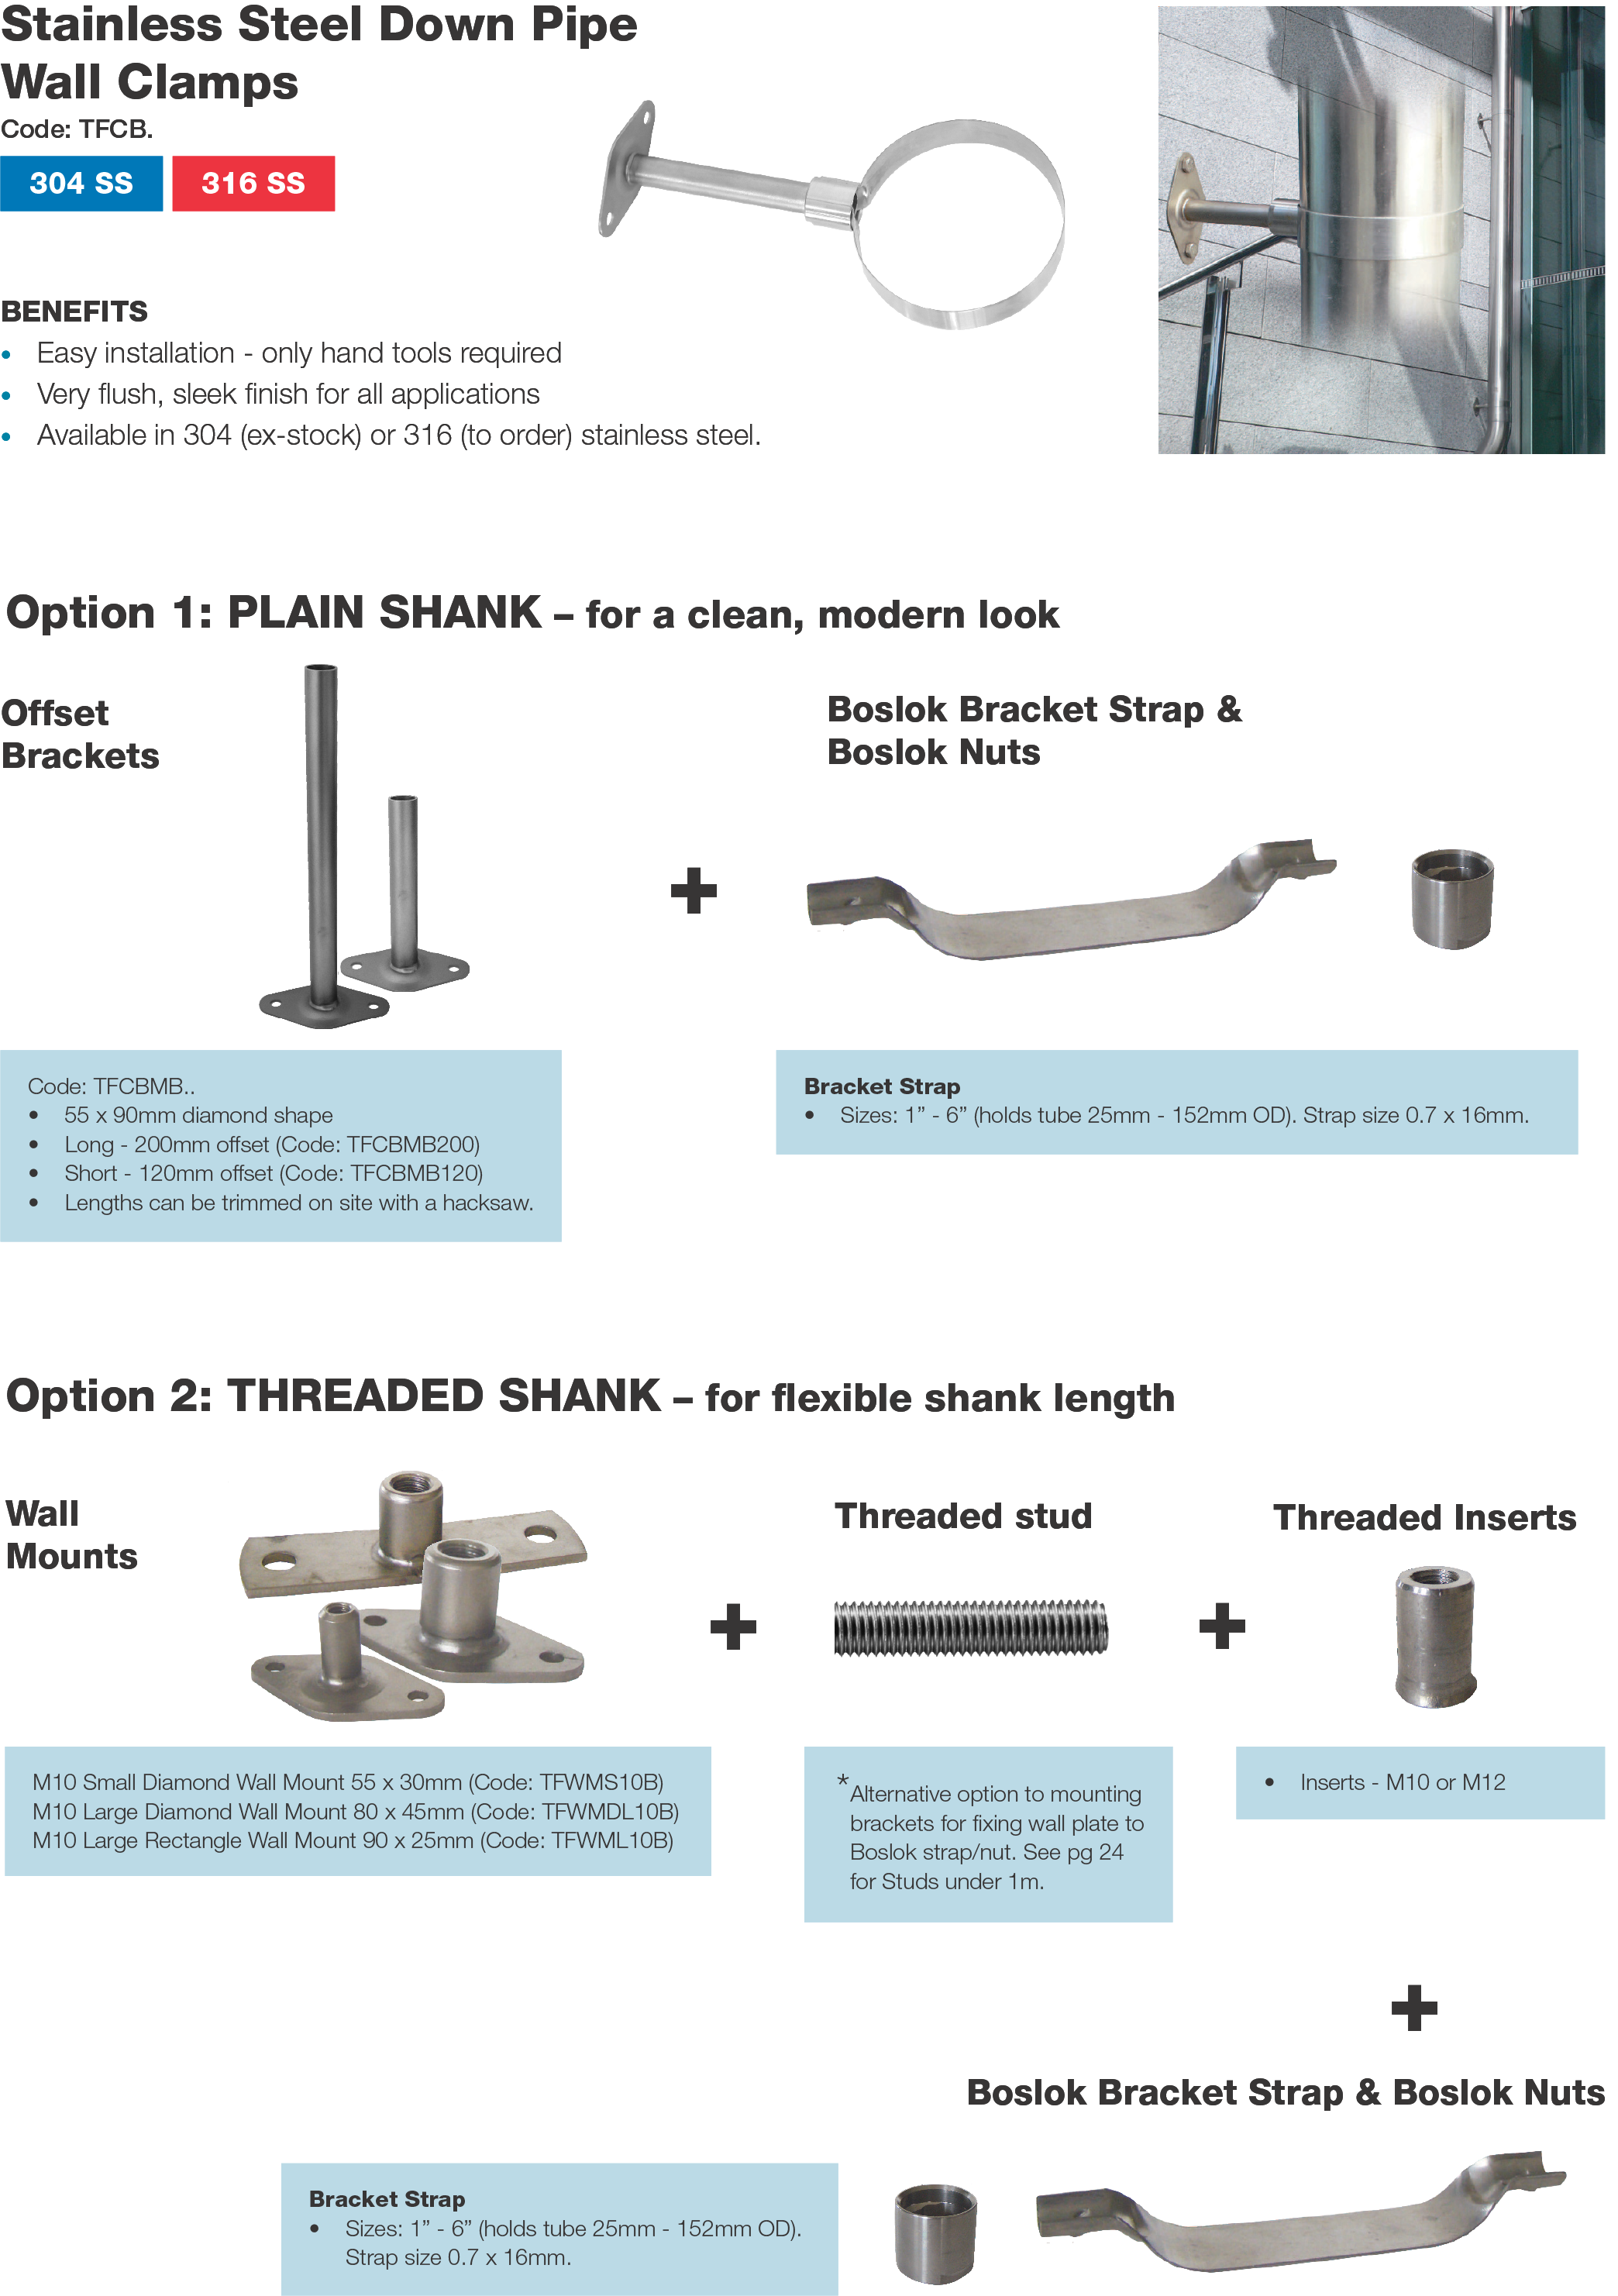 Anzor Stainless Downpipe Wall Clamp Options